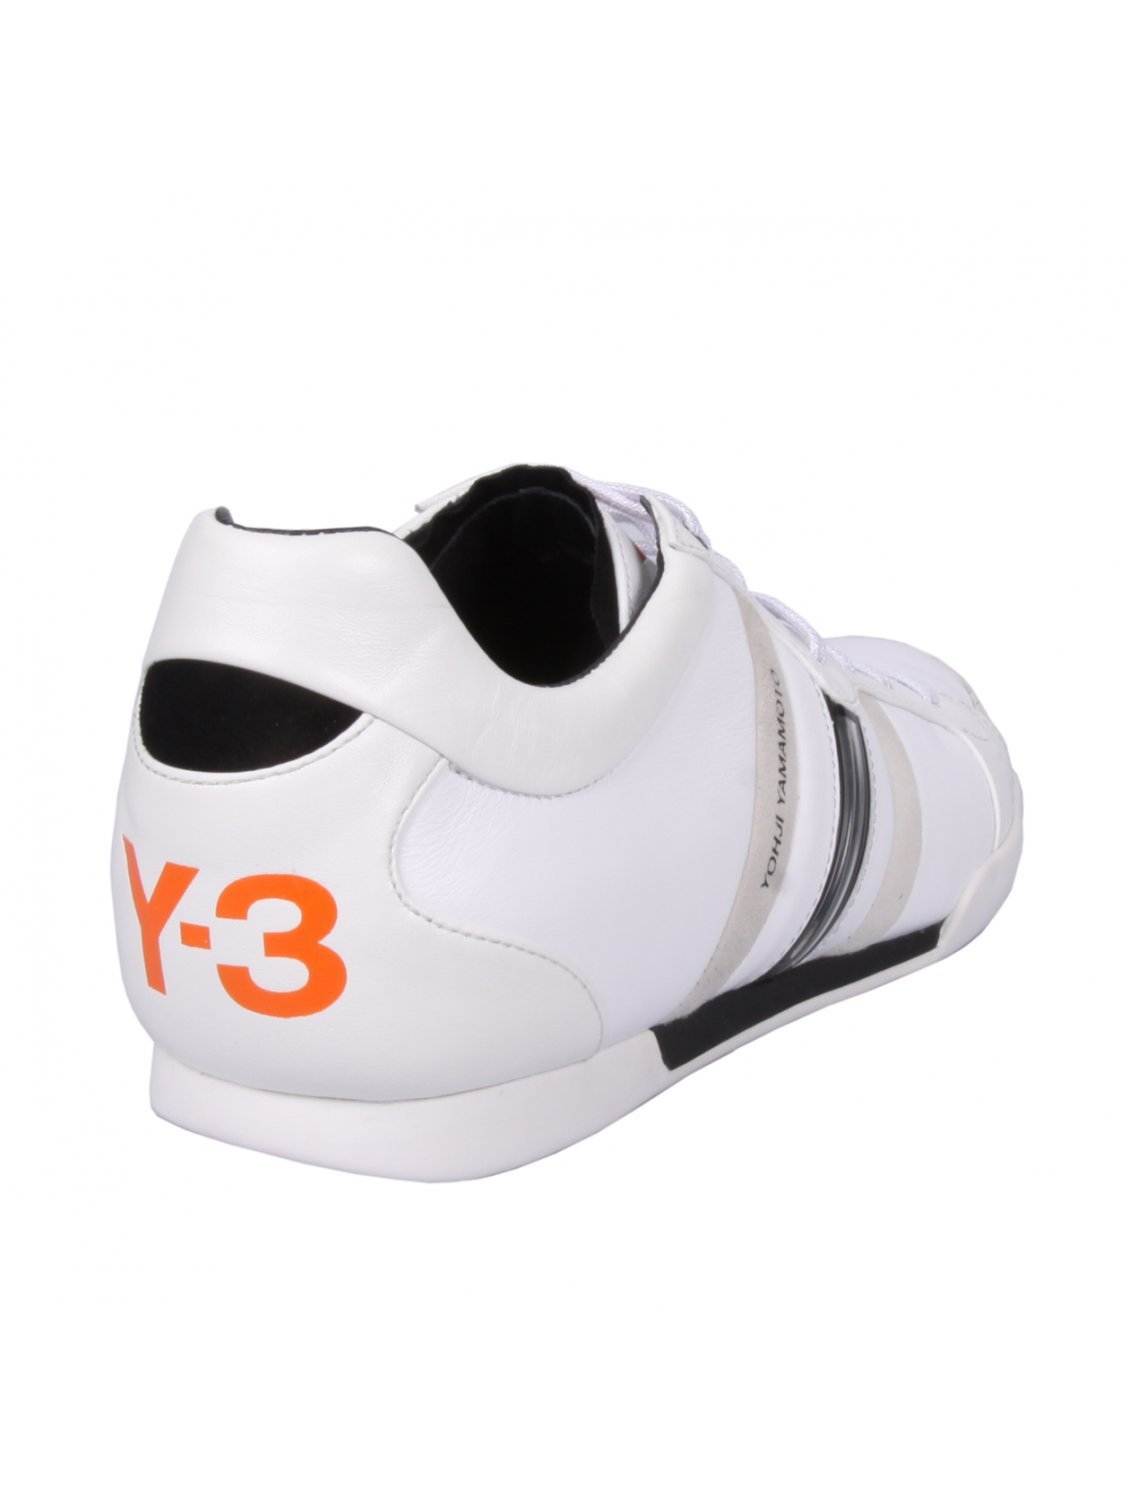 d961f05f39496 Y-3 Womens Classic Sala Trainer White in White - Lyst